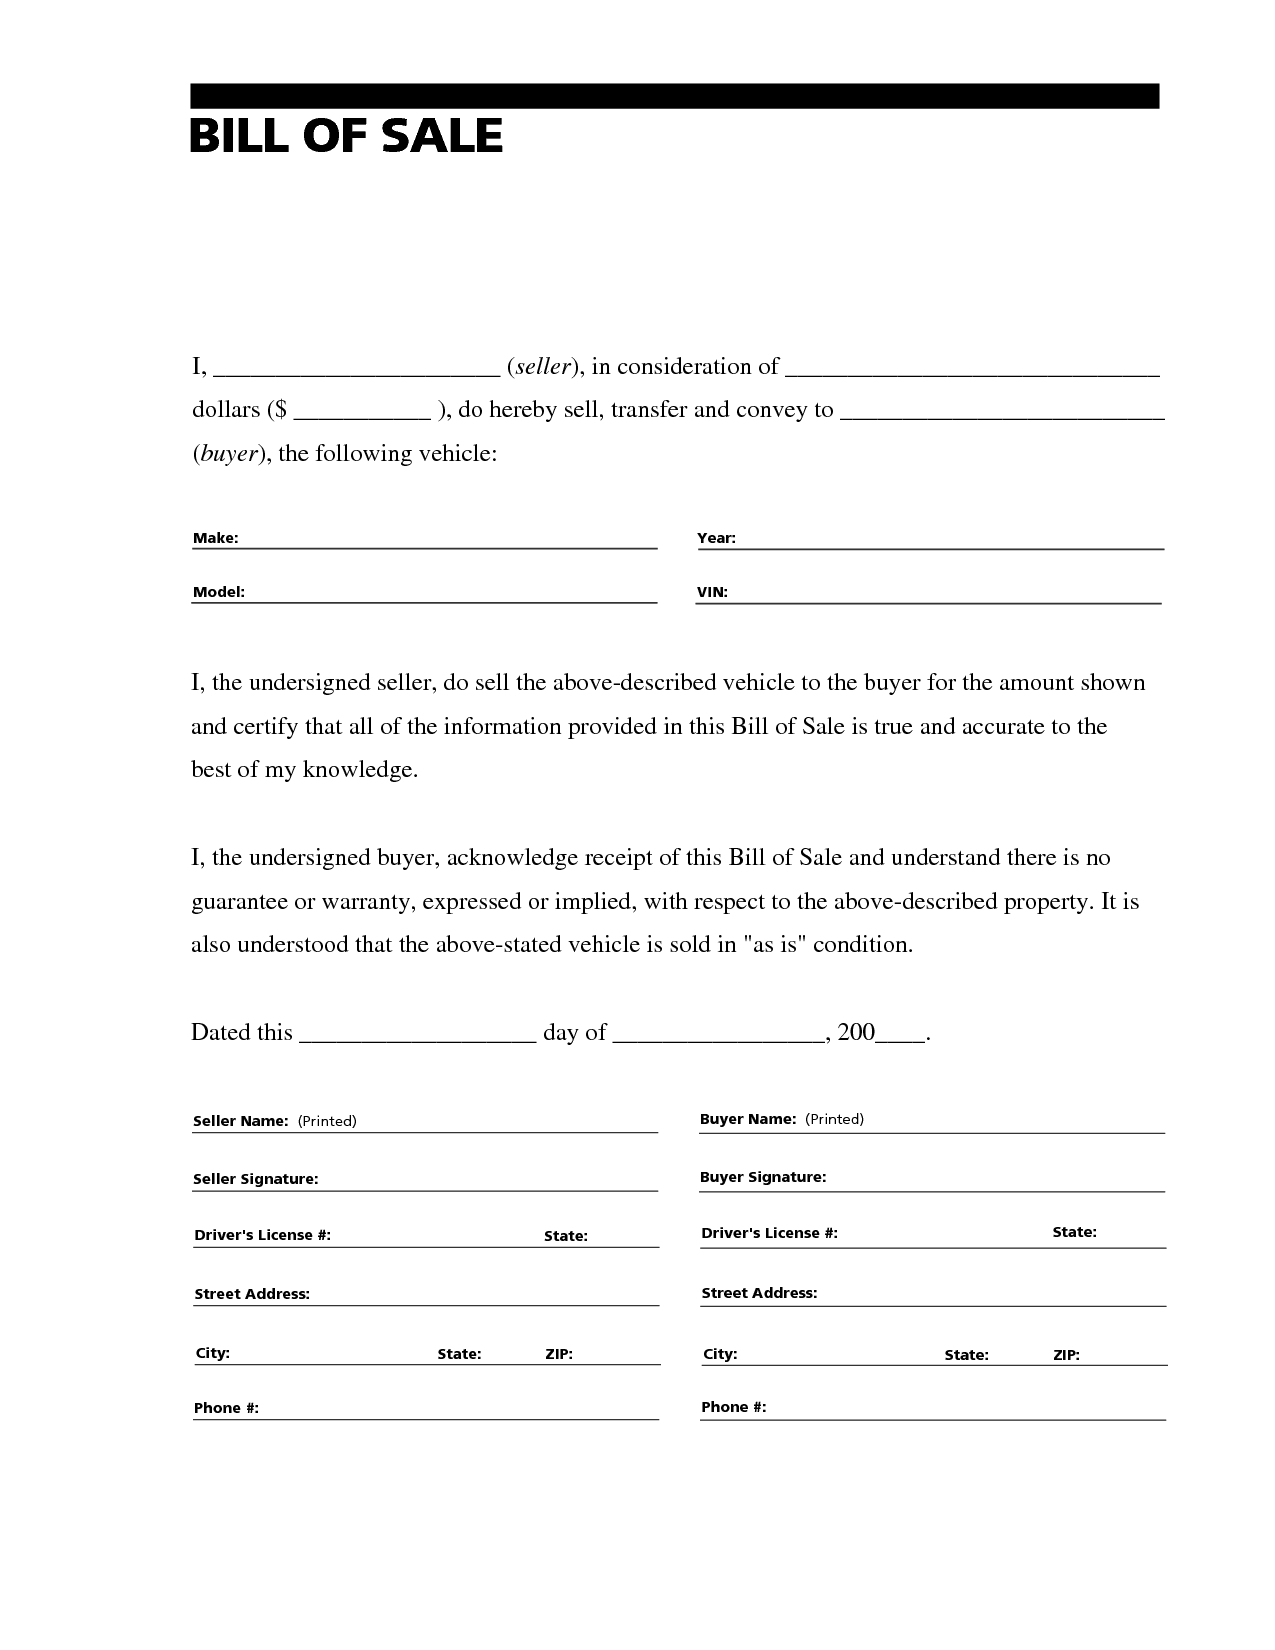 sell car form vatozatozdevelopmentco::Car Bill of Sale Form Template Printable